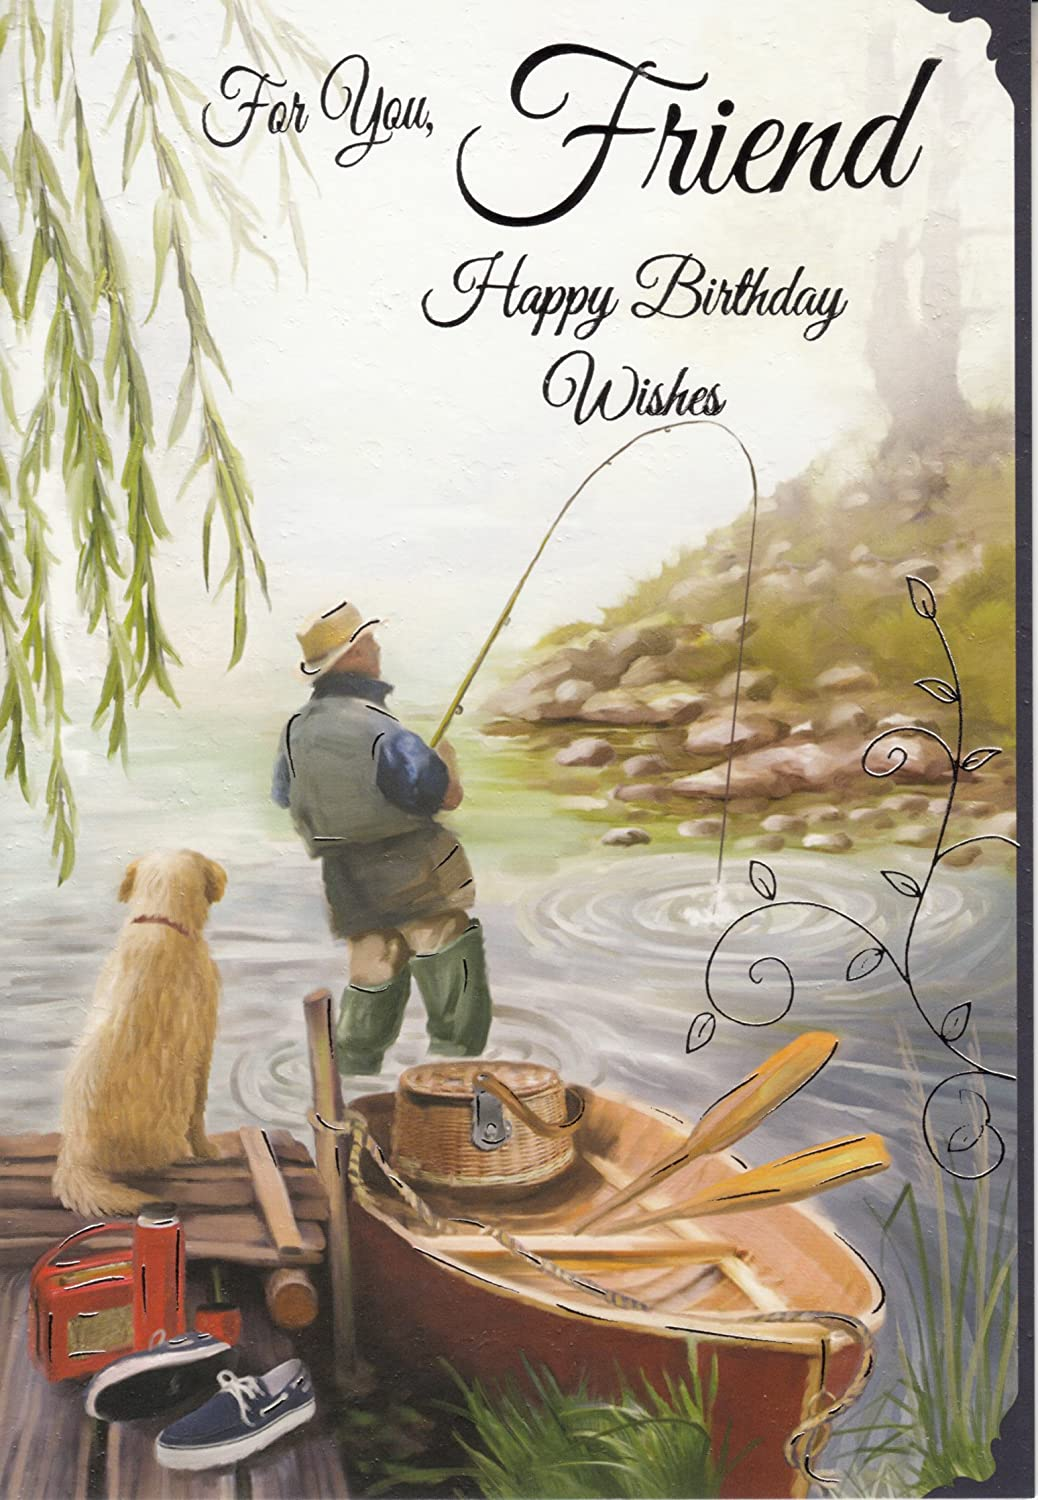 Amazon for you friend happy birthday wishes fishing birthday amazon for you friend happy birthday wishes fishing birthday card kitchen dining kristyandbryce Choice Image